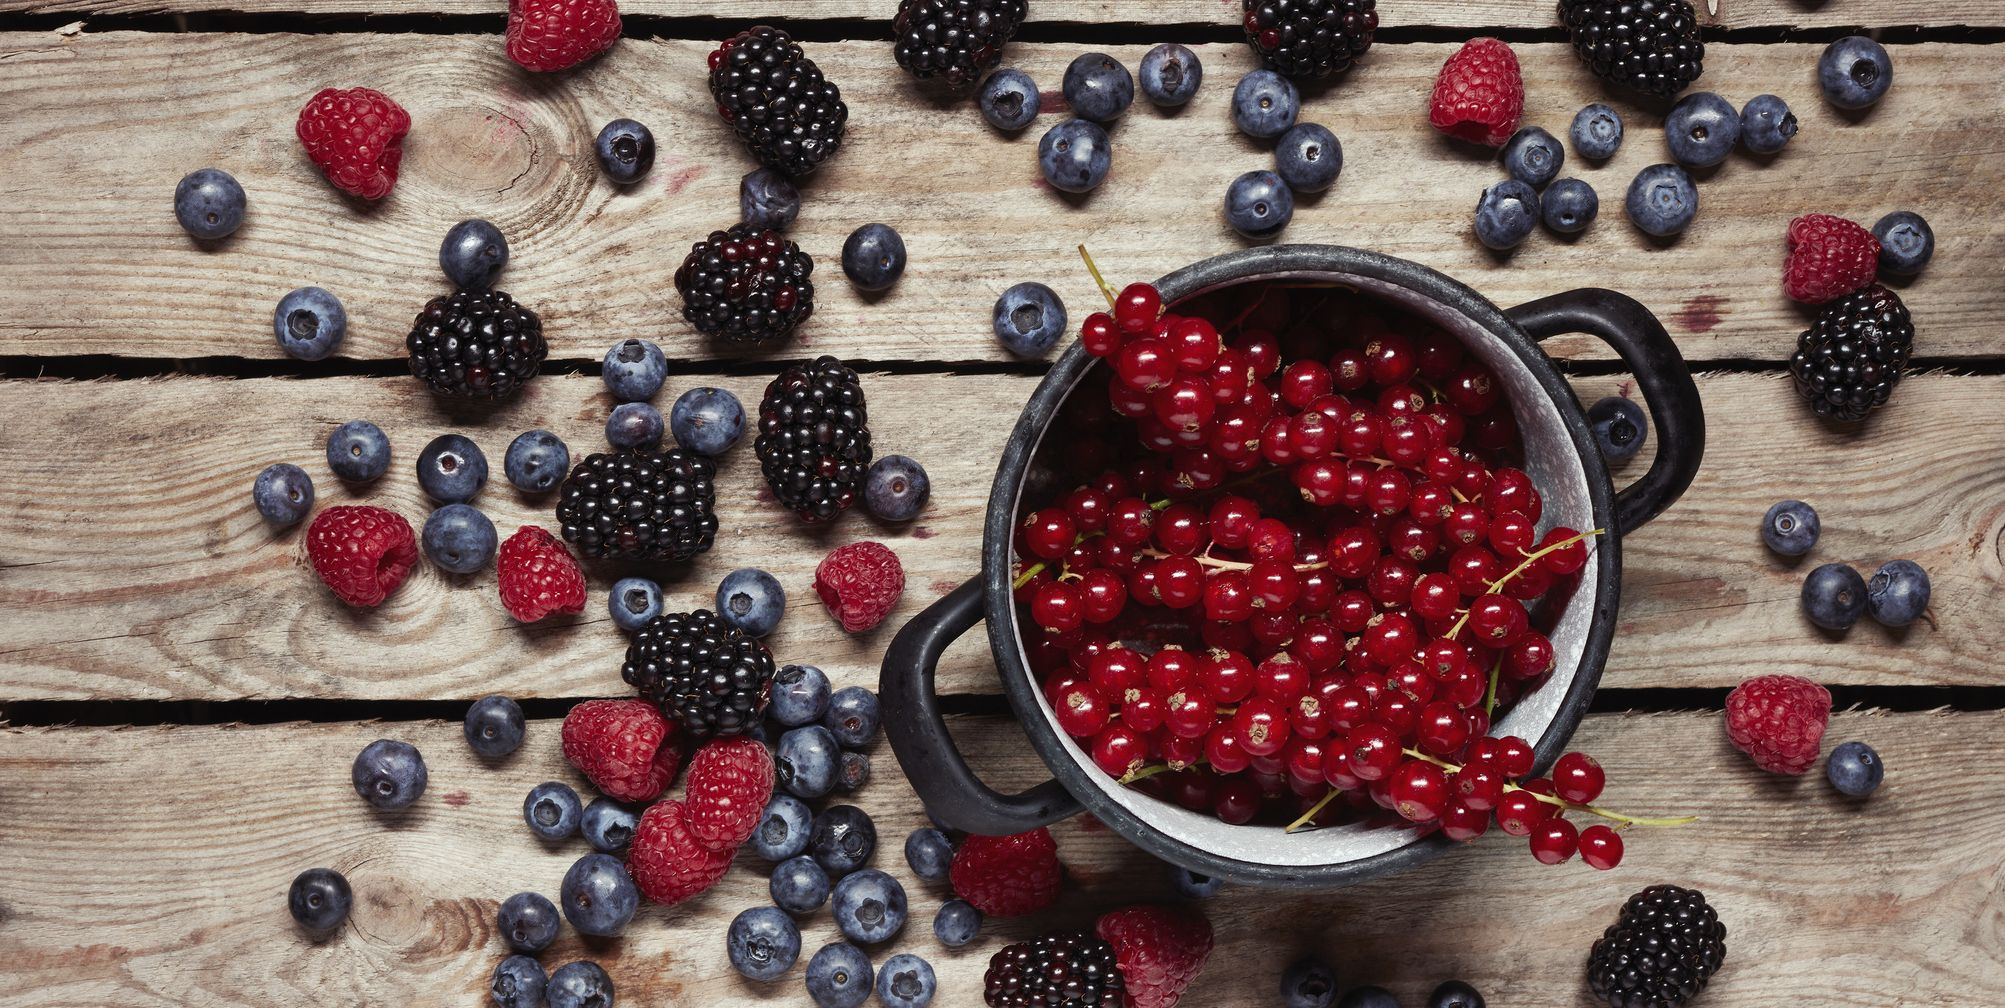 Directly above shot of red currants in container surrounded with berry fruits on table